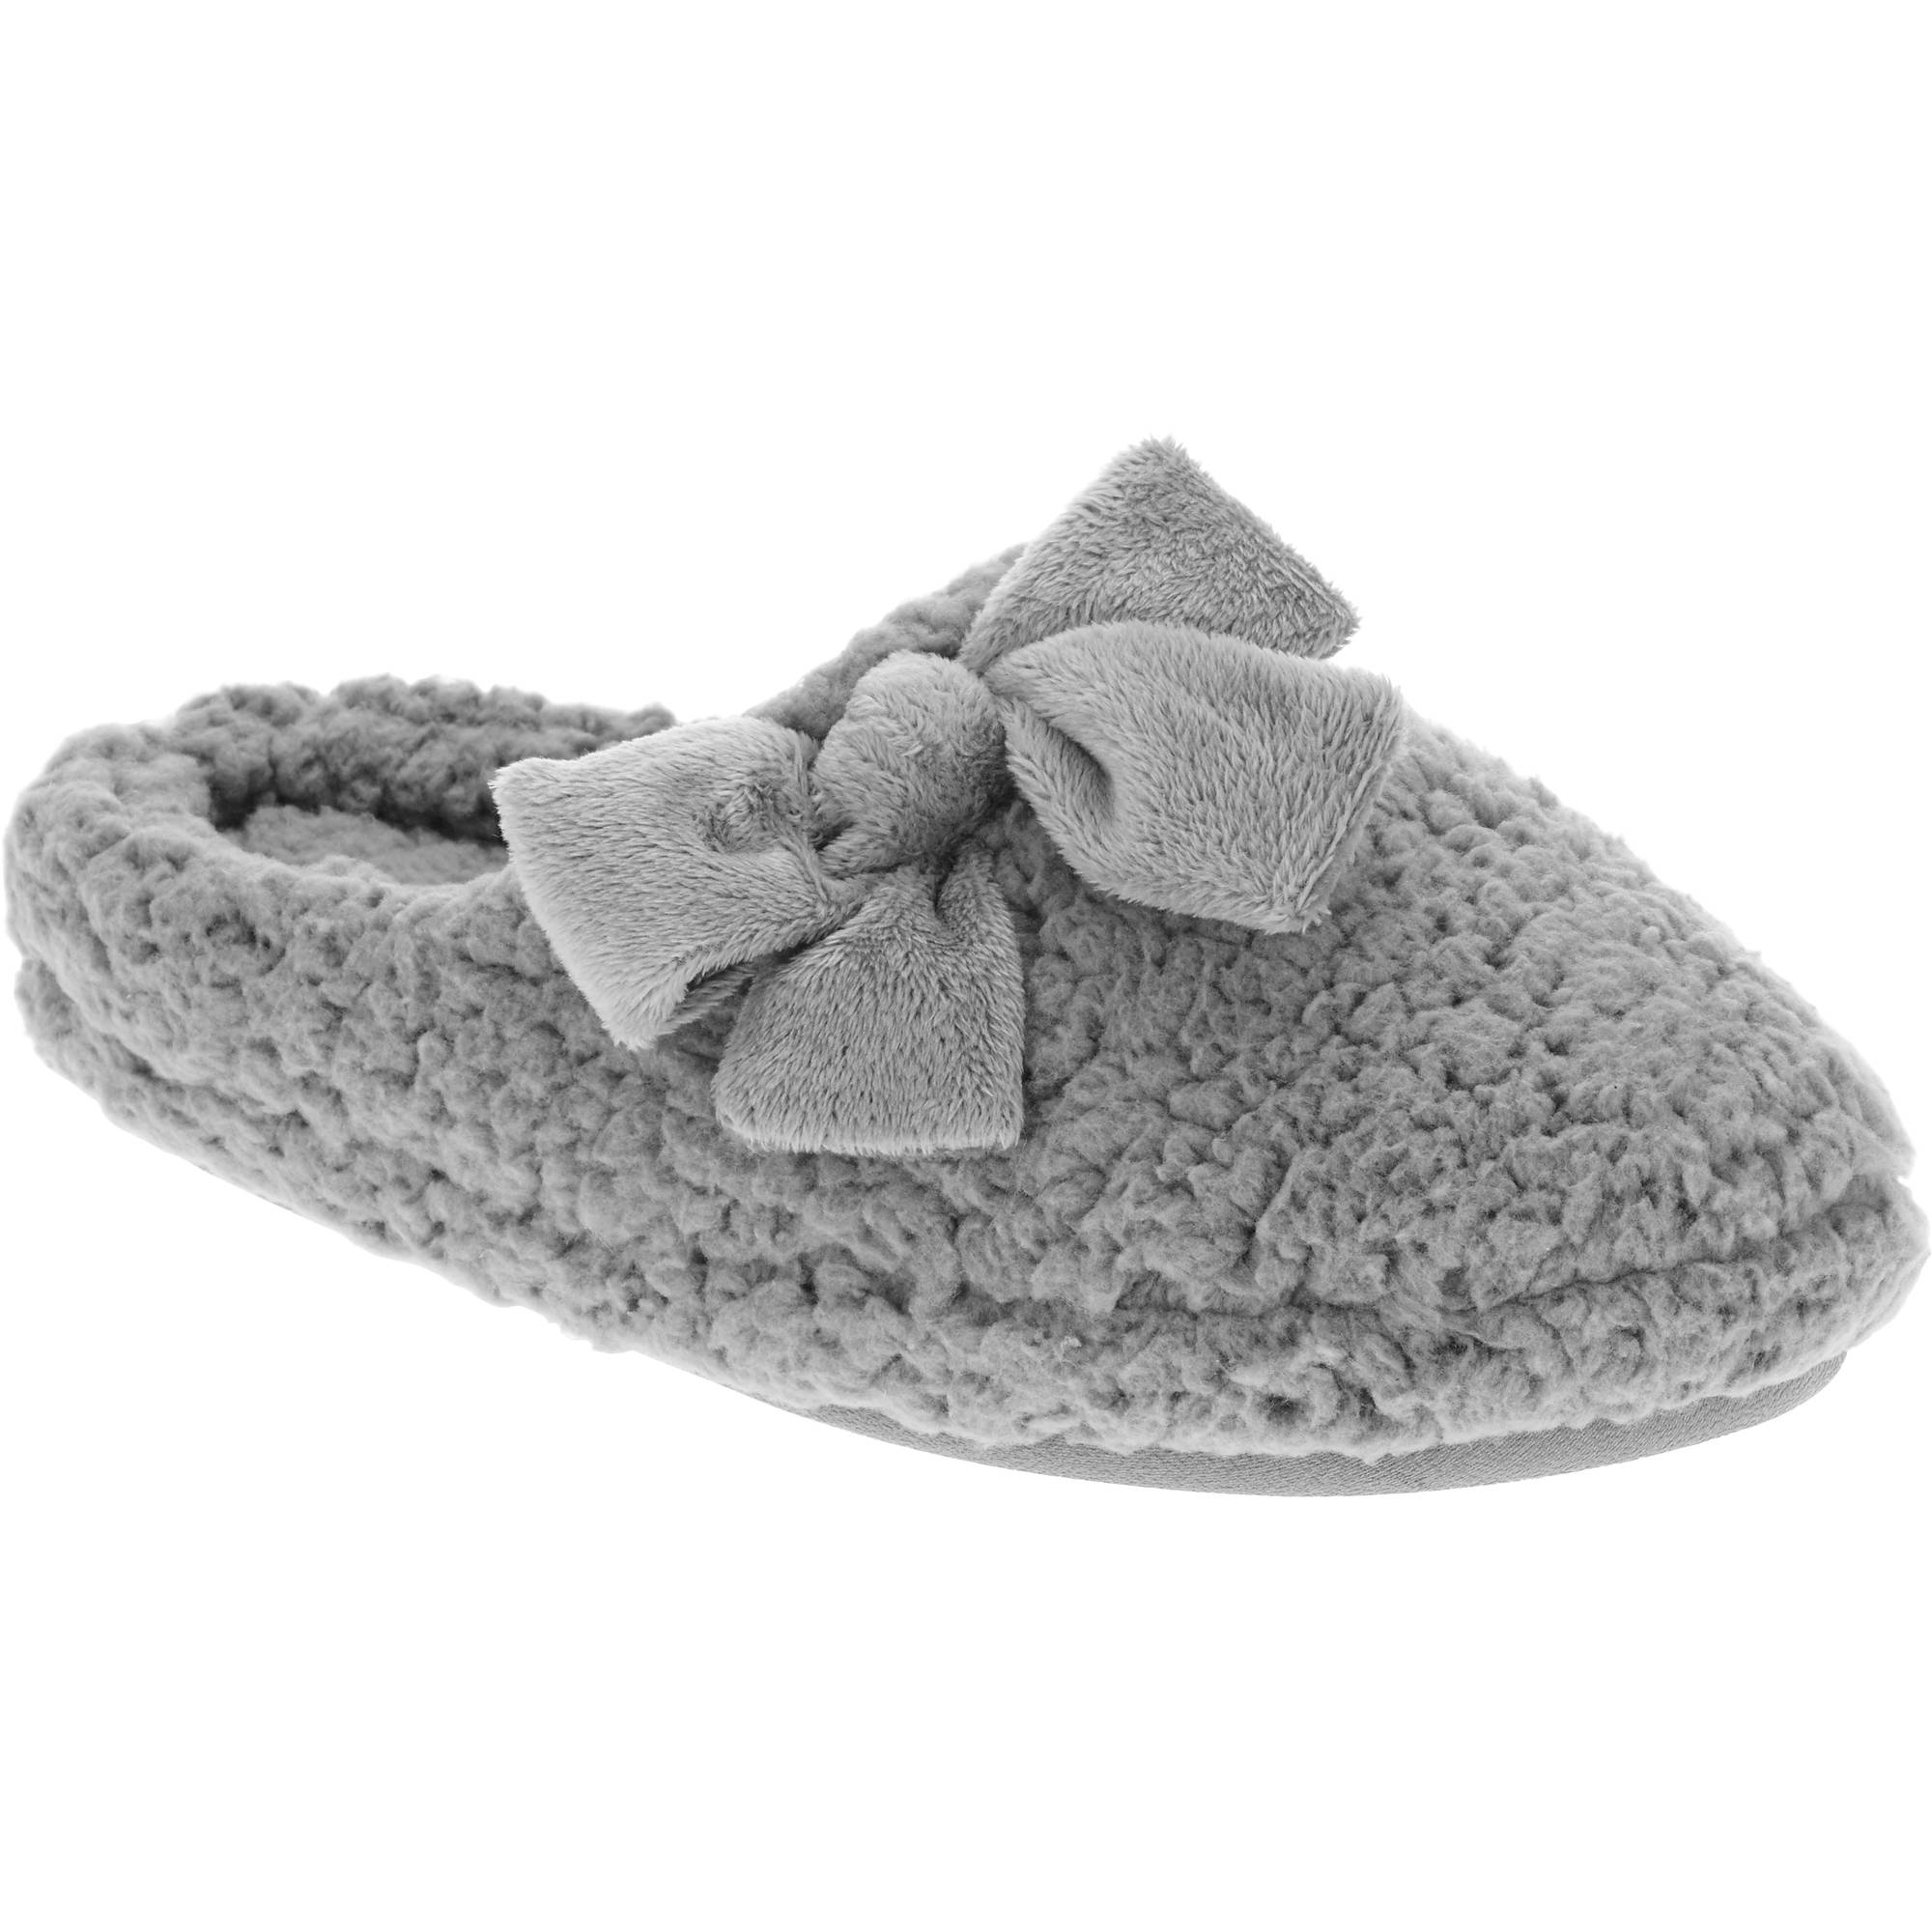 Genuine Dickies Womens' Plush Terry Clog